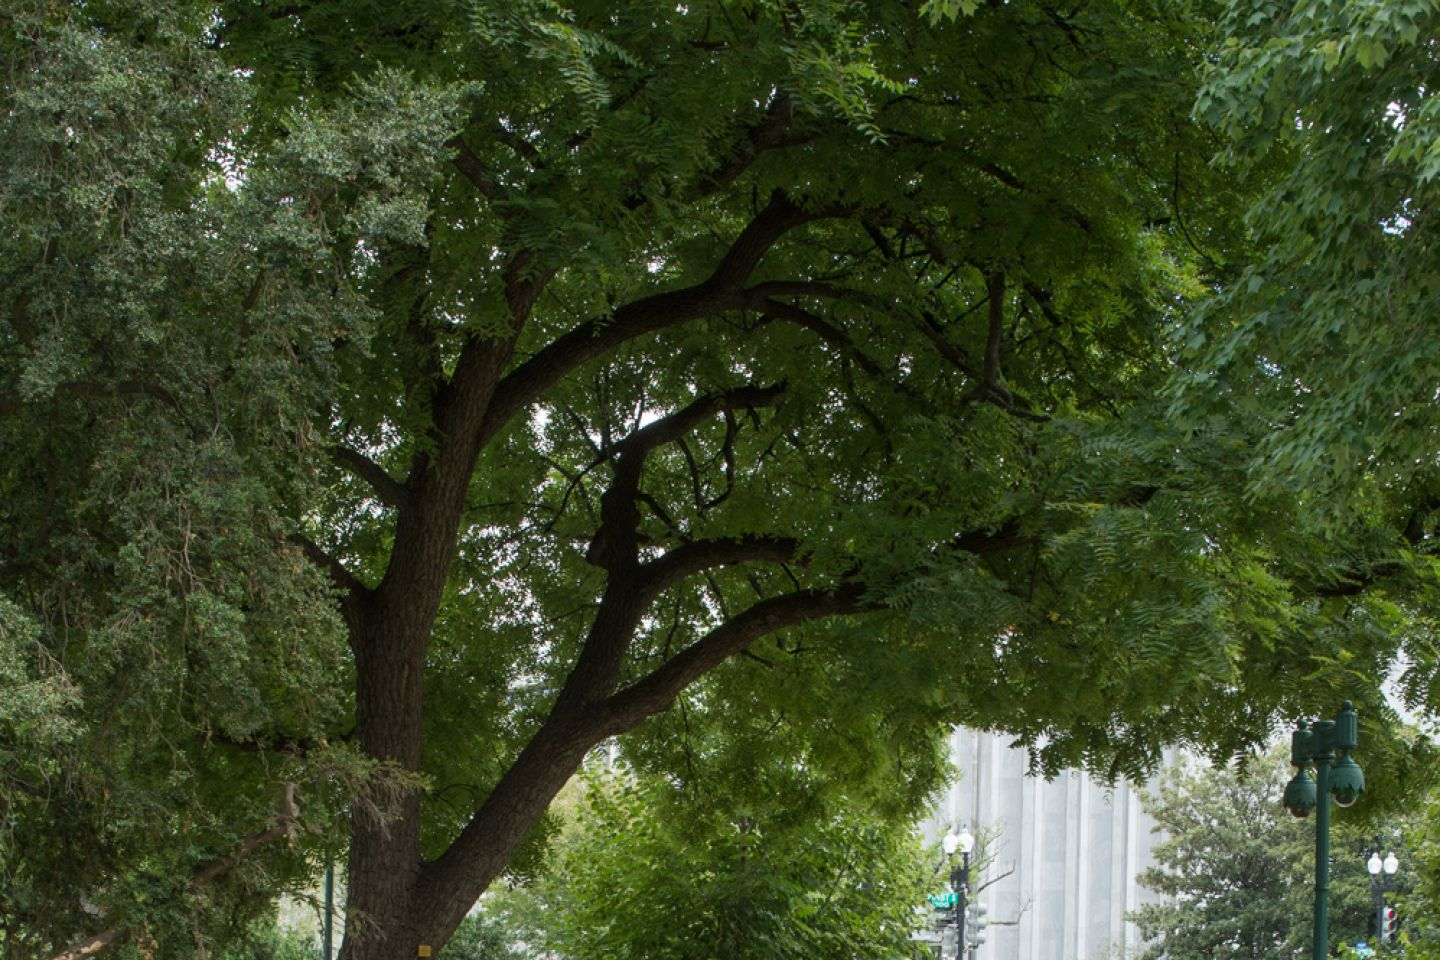 The Arbor Day Founder tree on U.S. Capitol Grounds in summer.